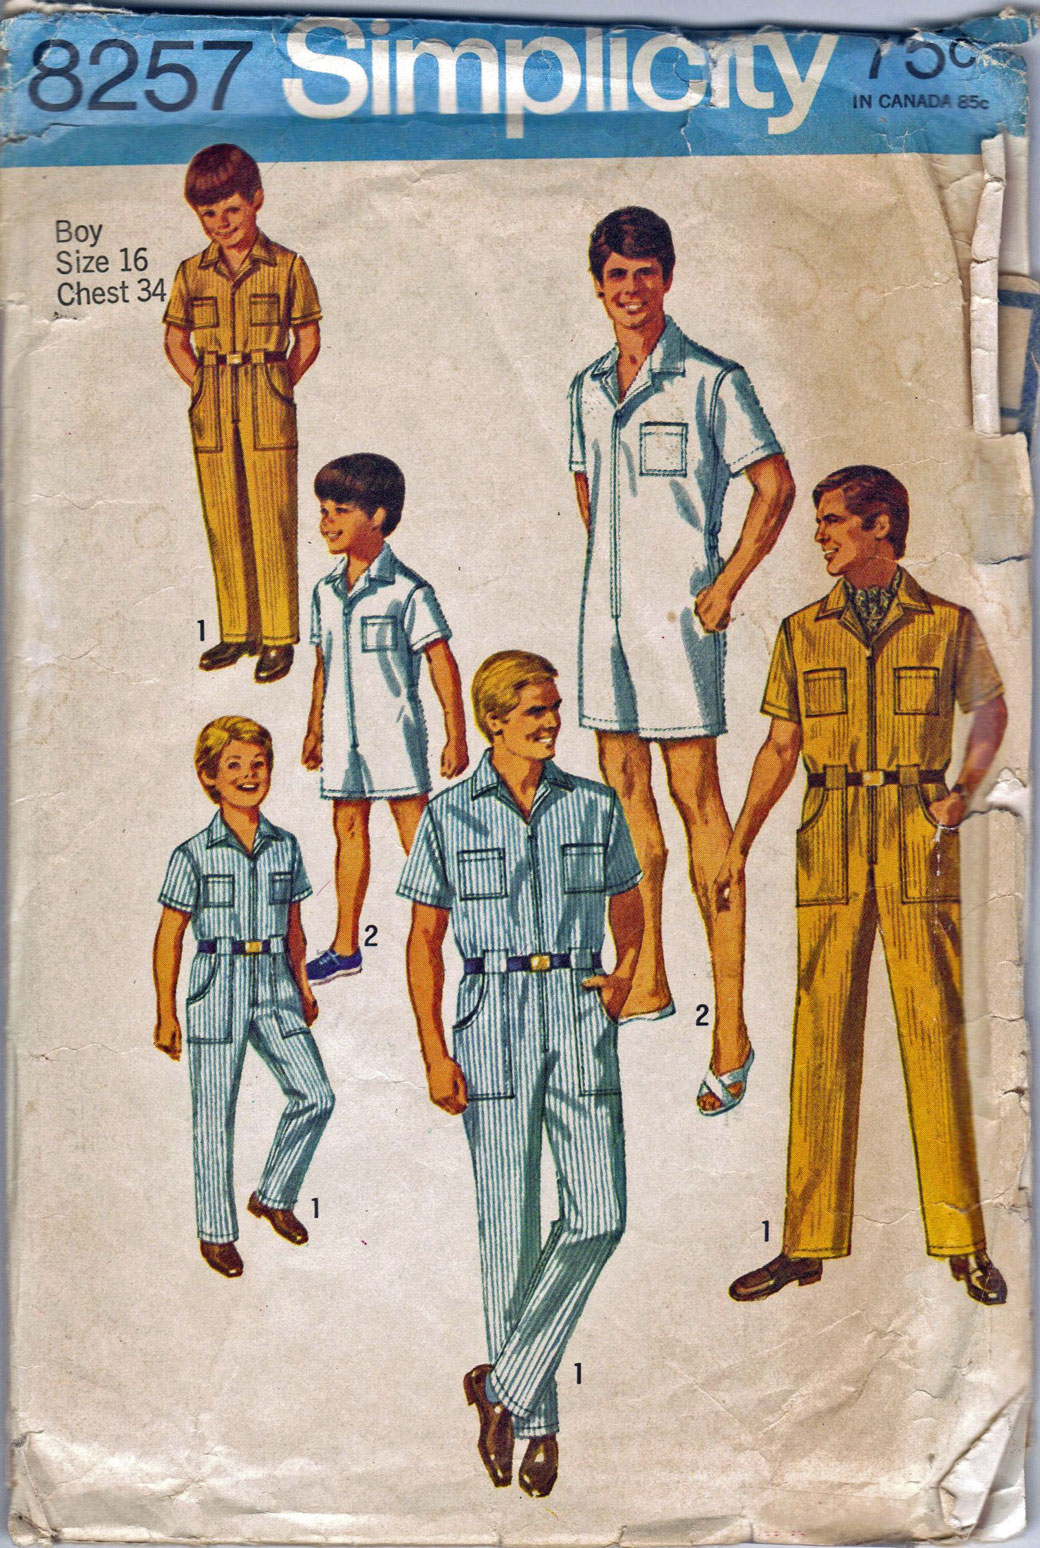 Mens Fashion of the 70s | Shelby White - The blog of ...